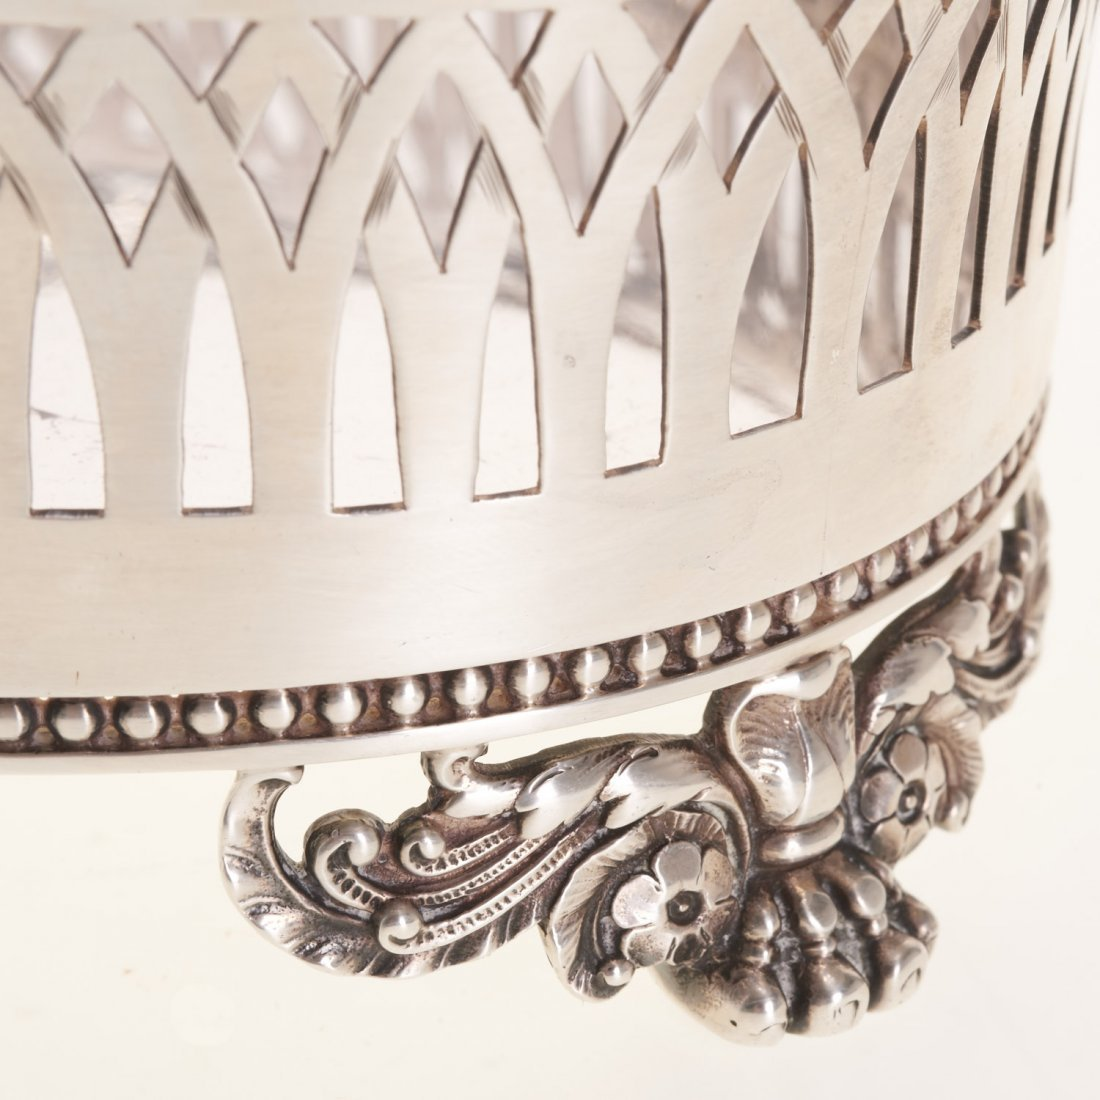 Tiffany & Co. reticulated sterling silver basket - 4